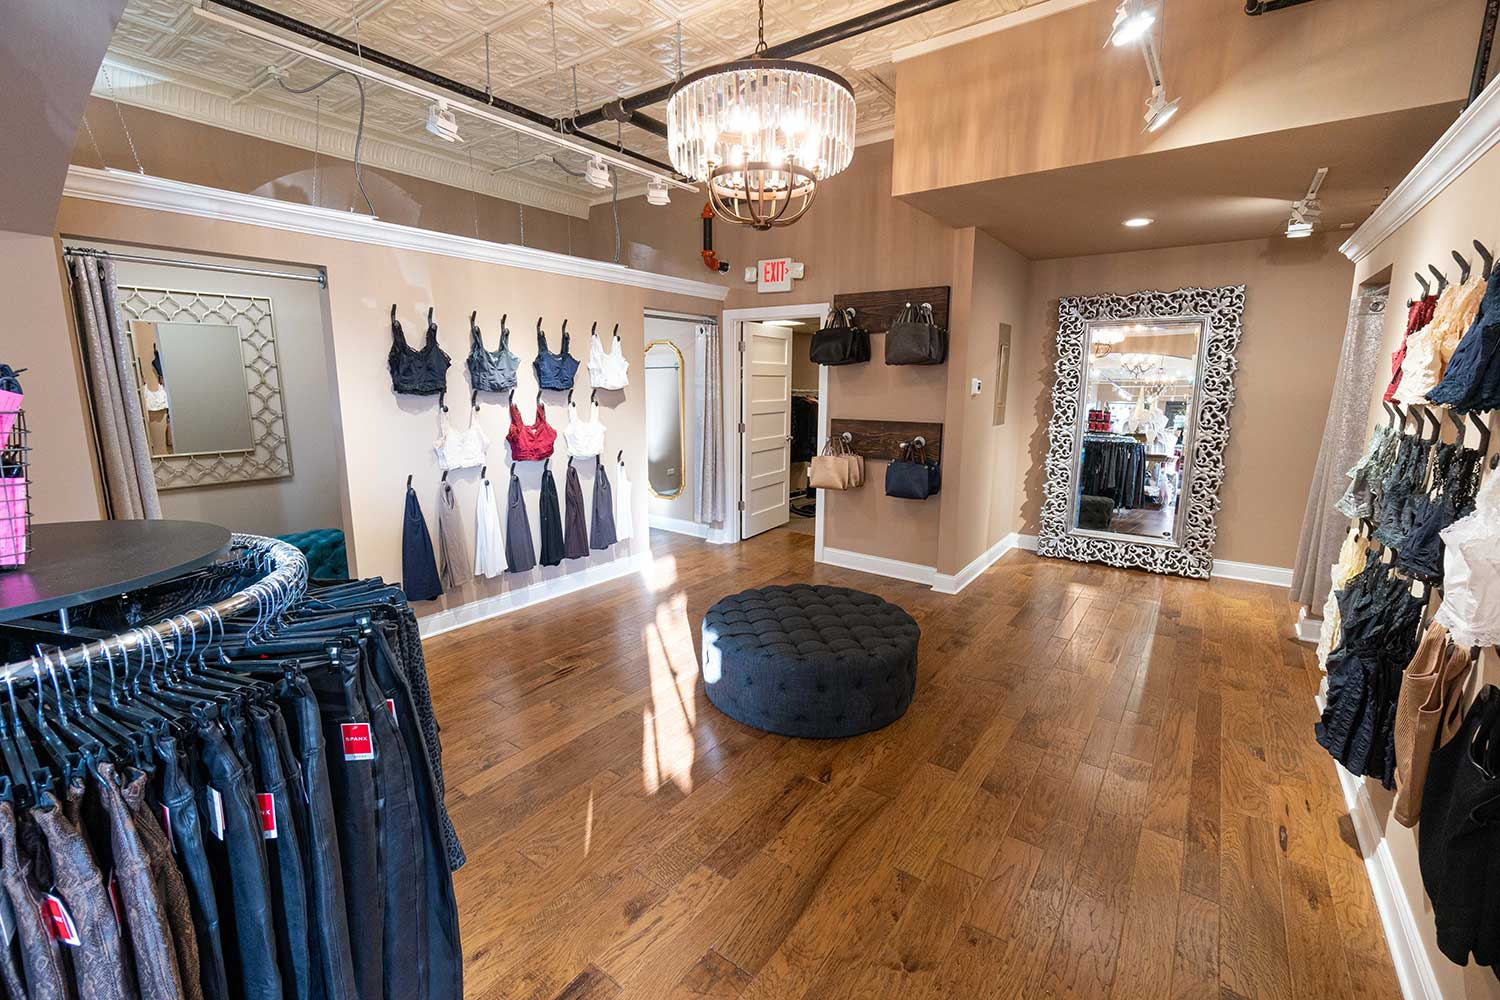 Changing room with clothes on the wall and chandelier